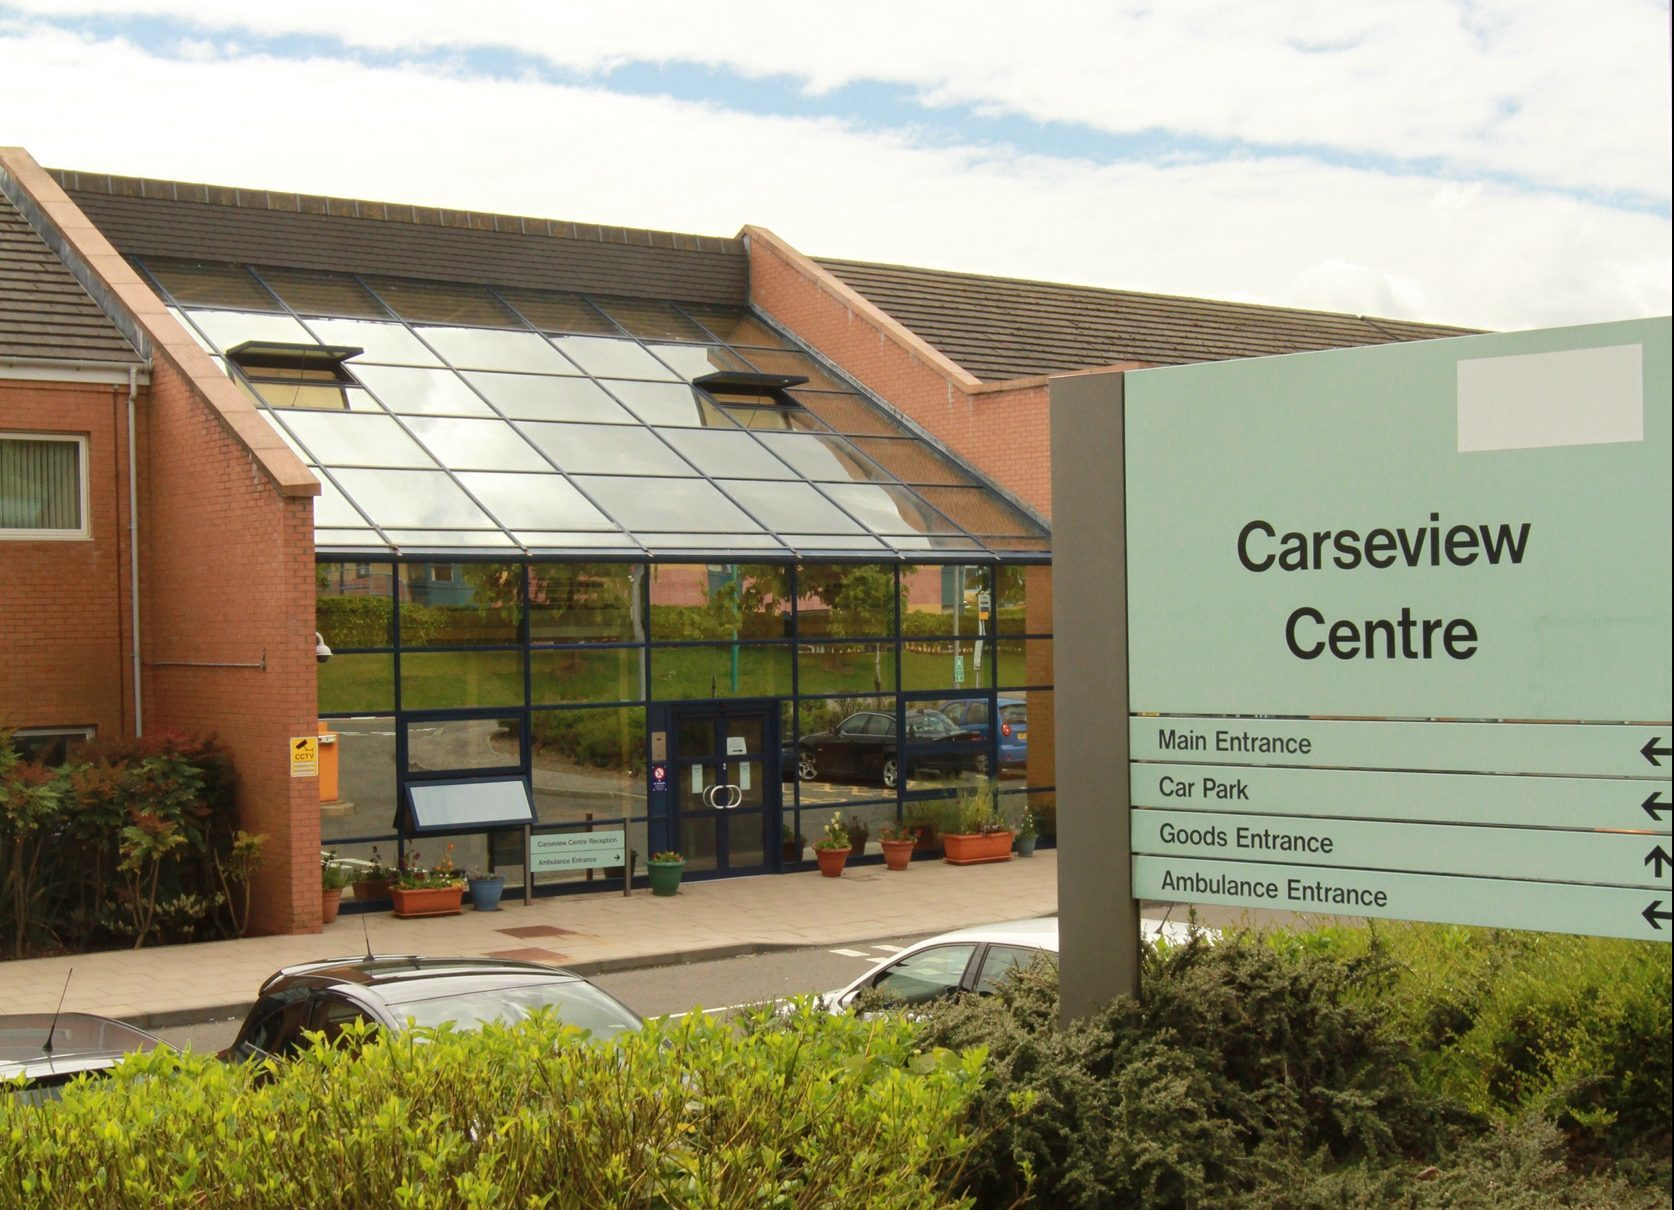 An independent inquiry is being held into suicides connected with the Carseview Centre